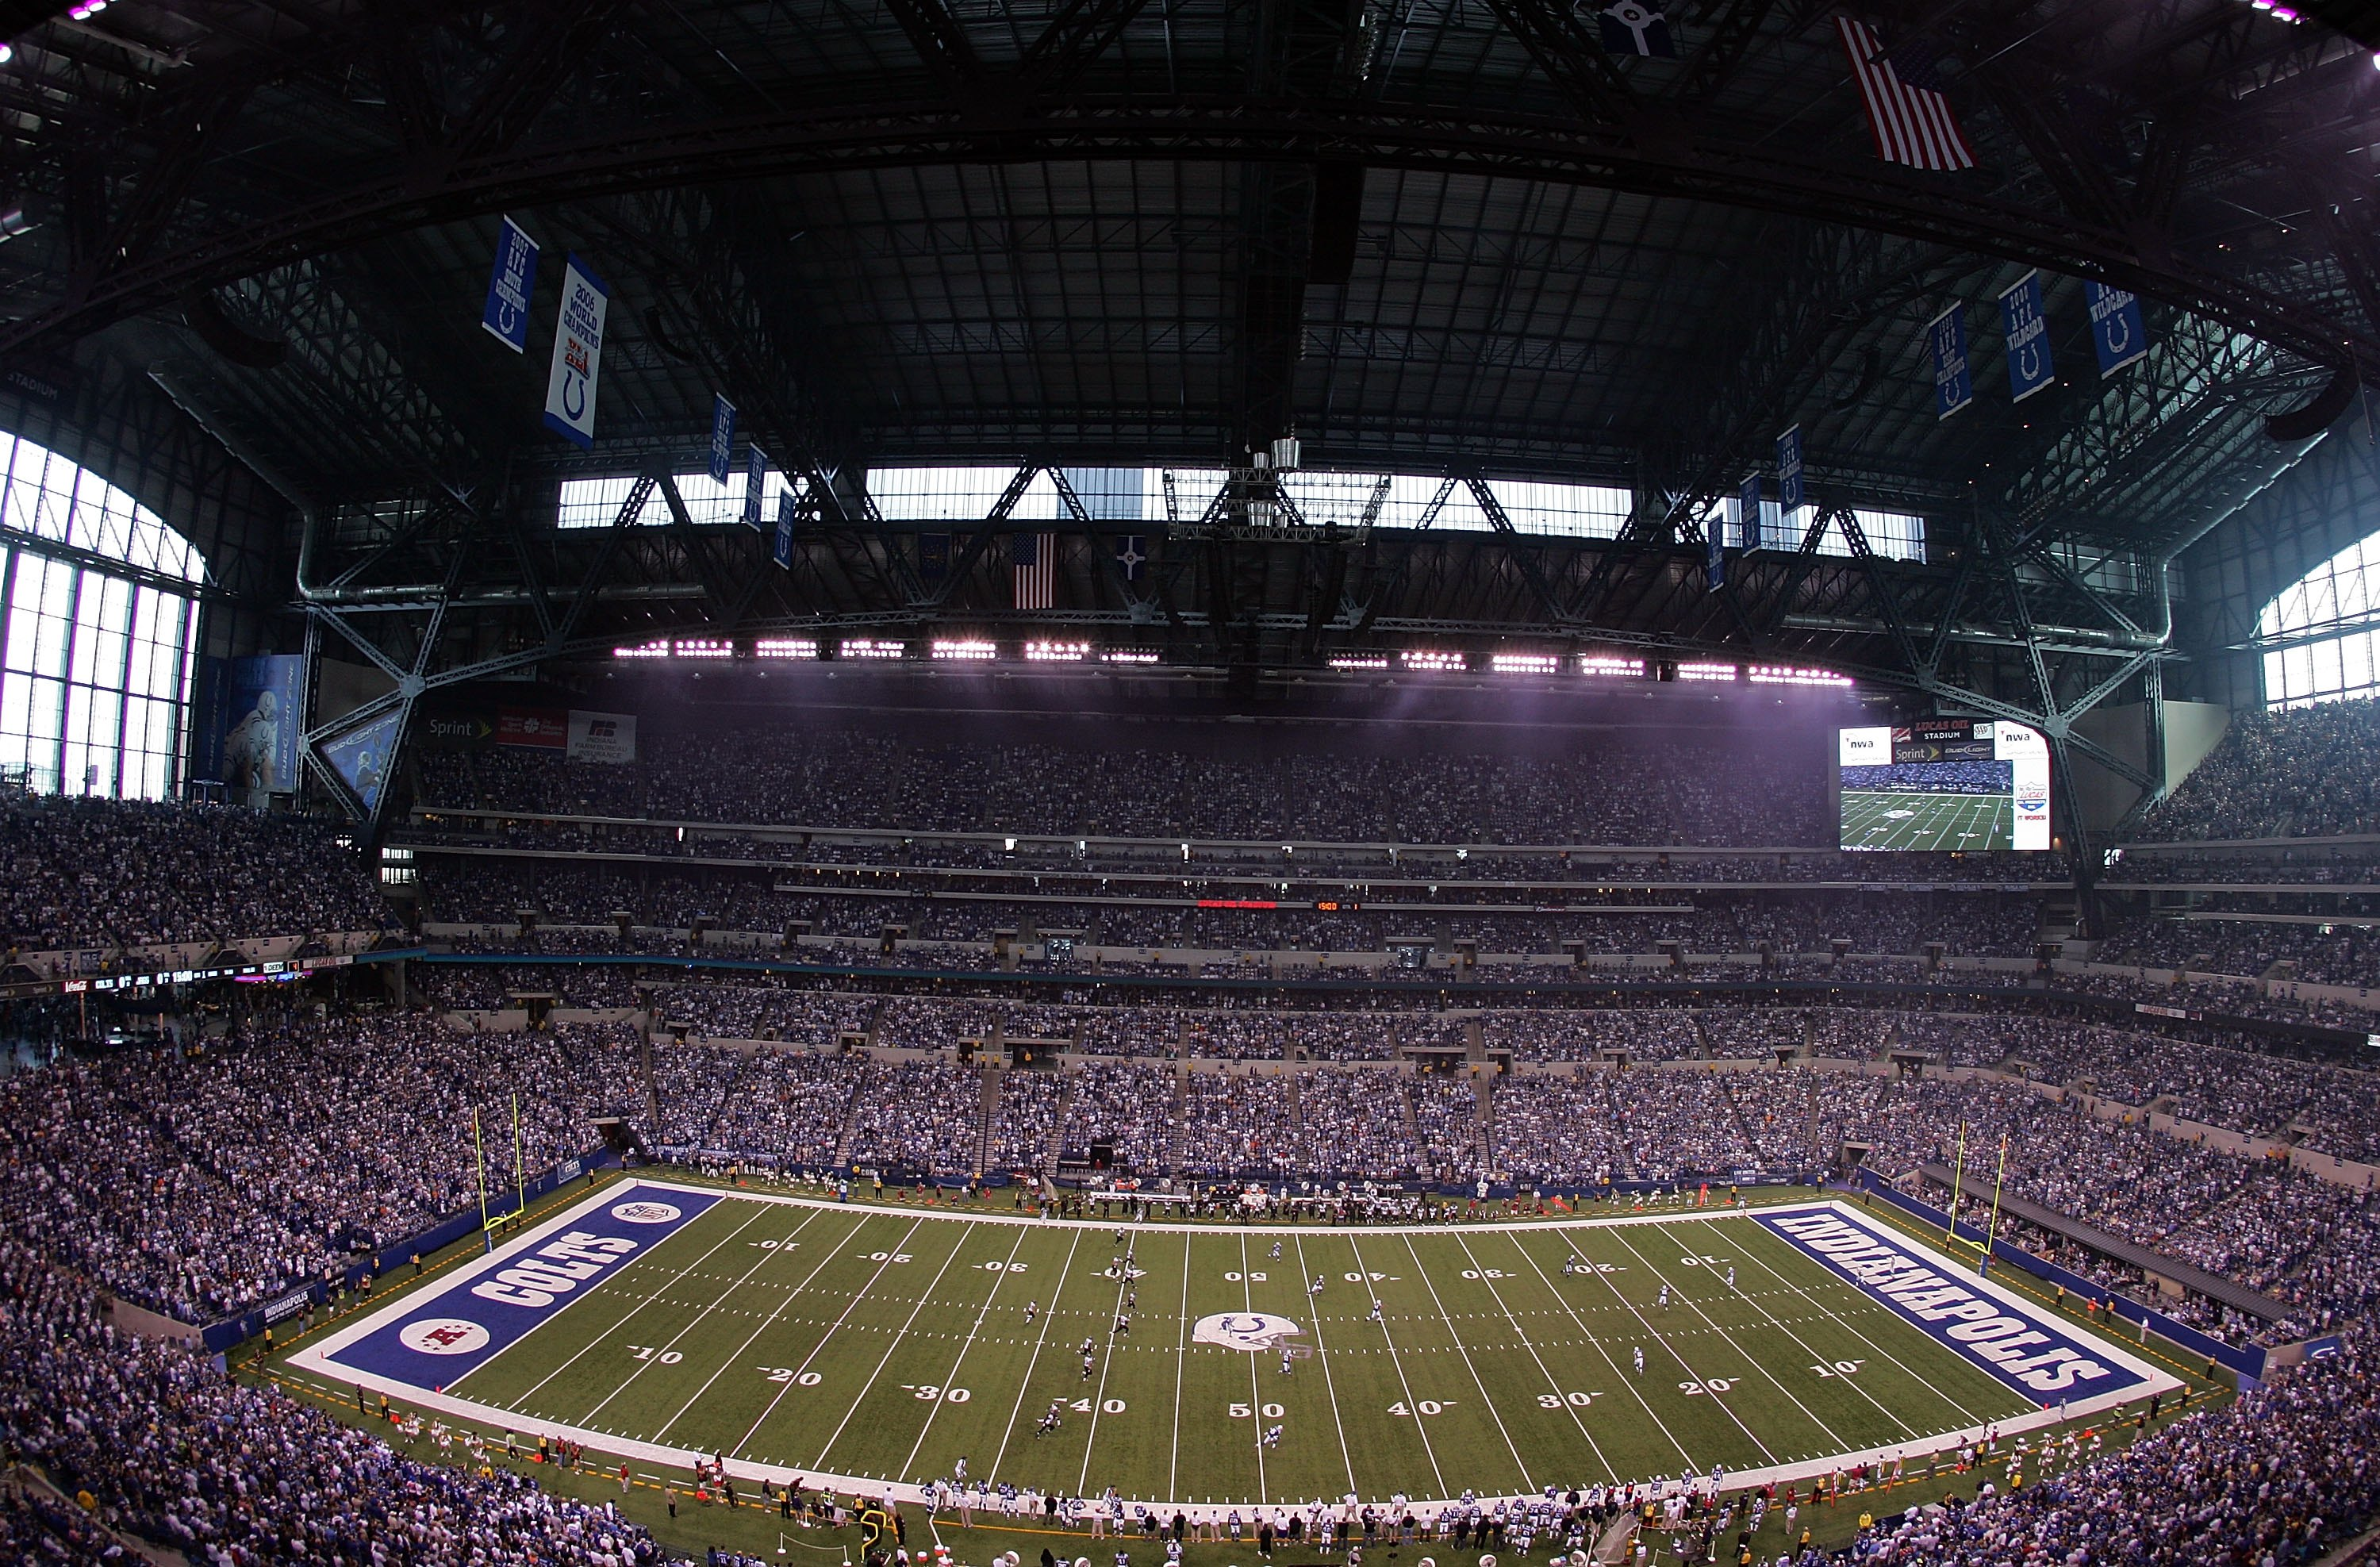 A view from the top of Lucas Oil Stadium